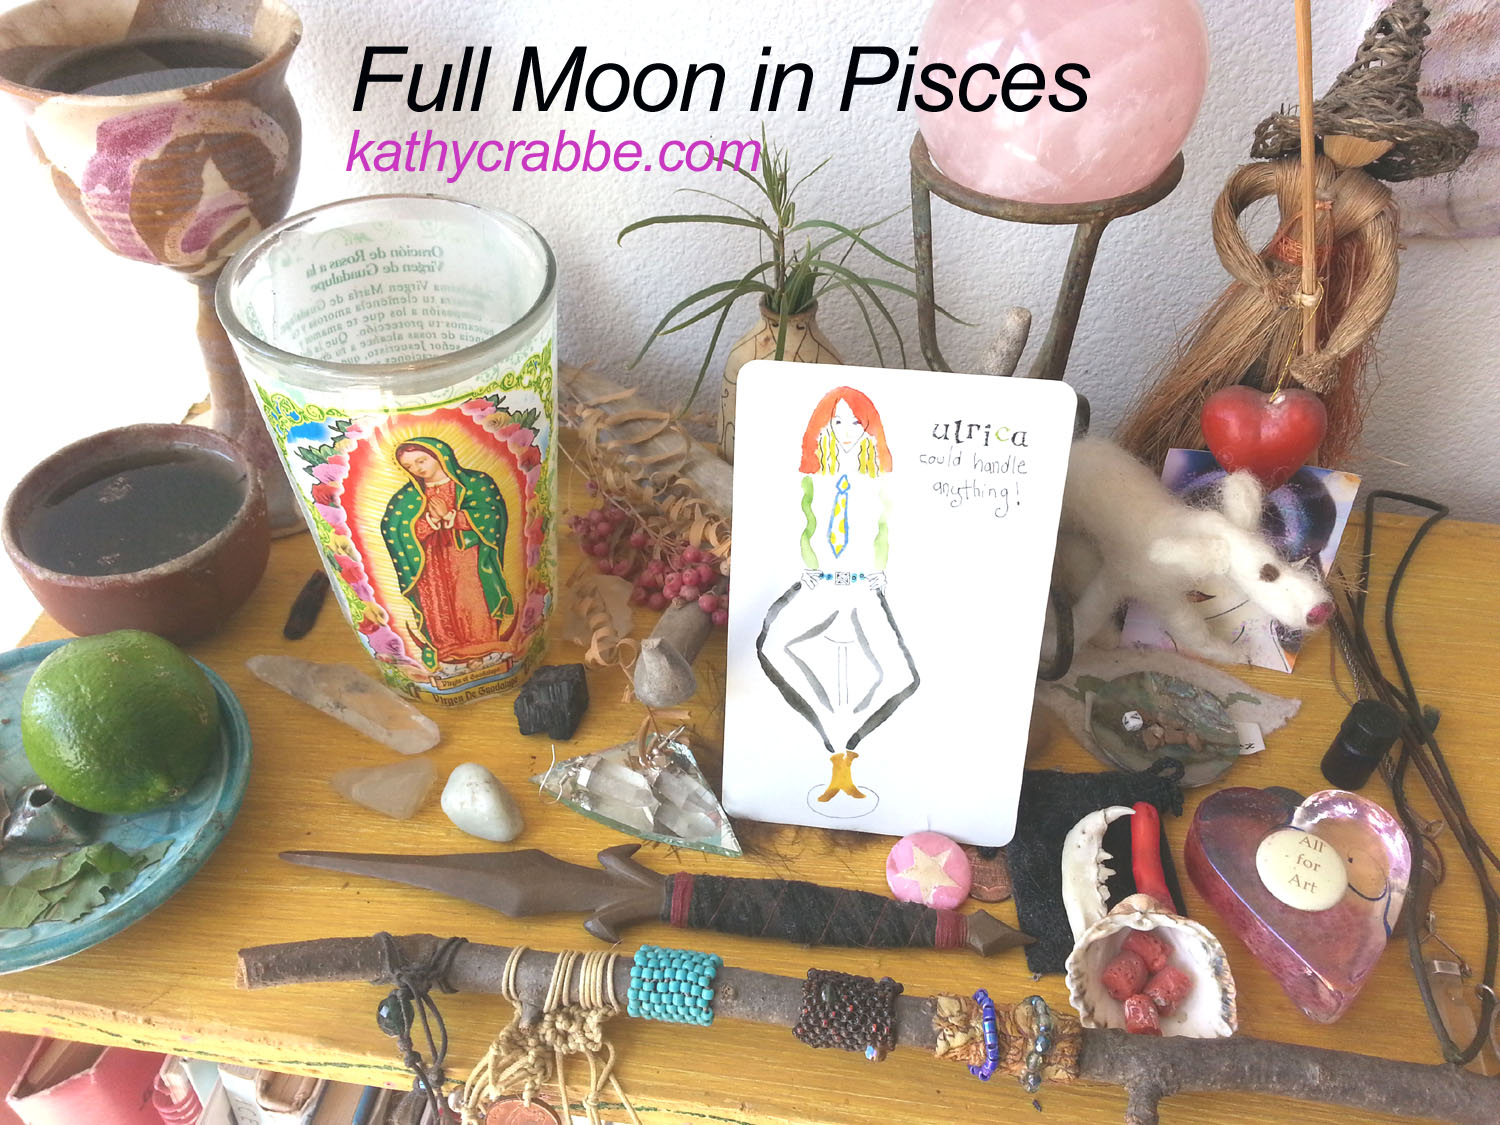 Pisces Full Moon altar by Kathy Crabbe